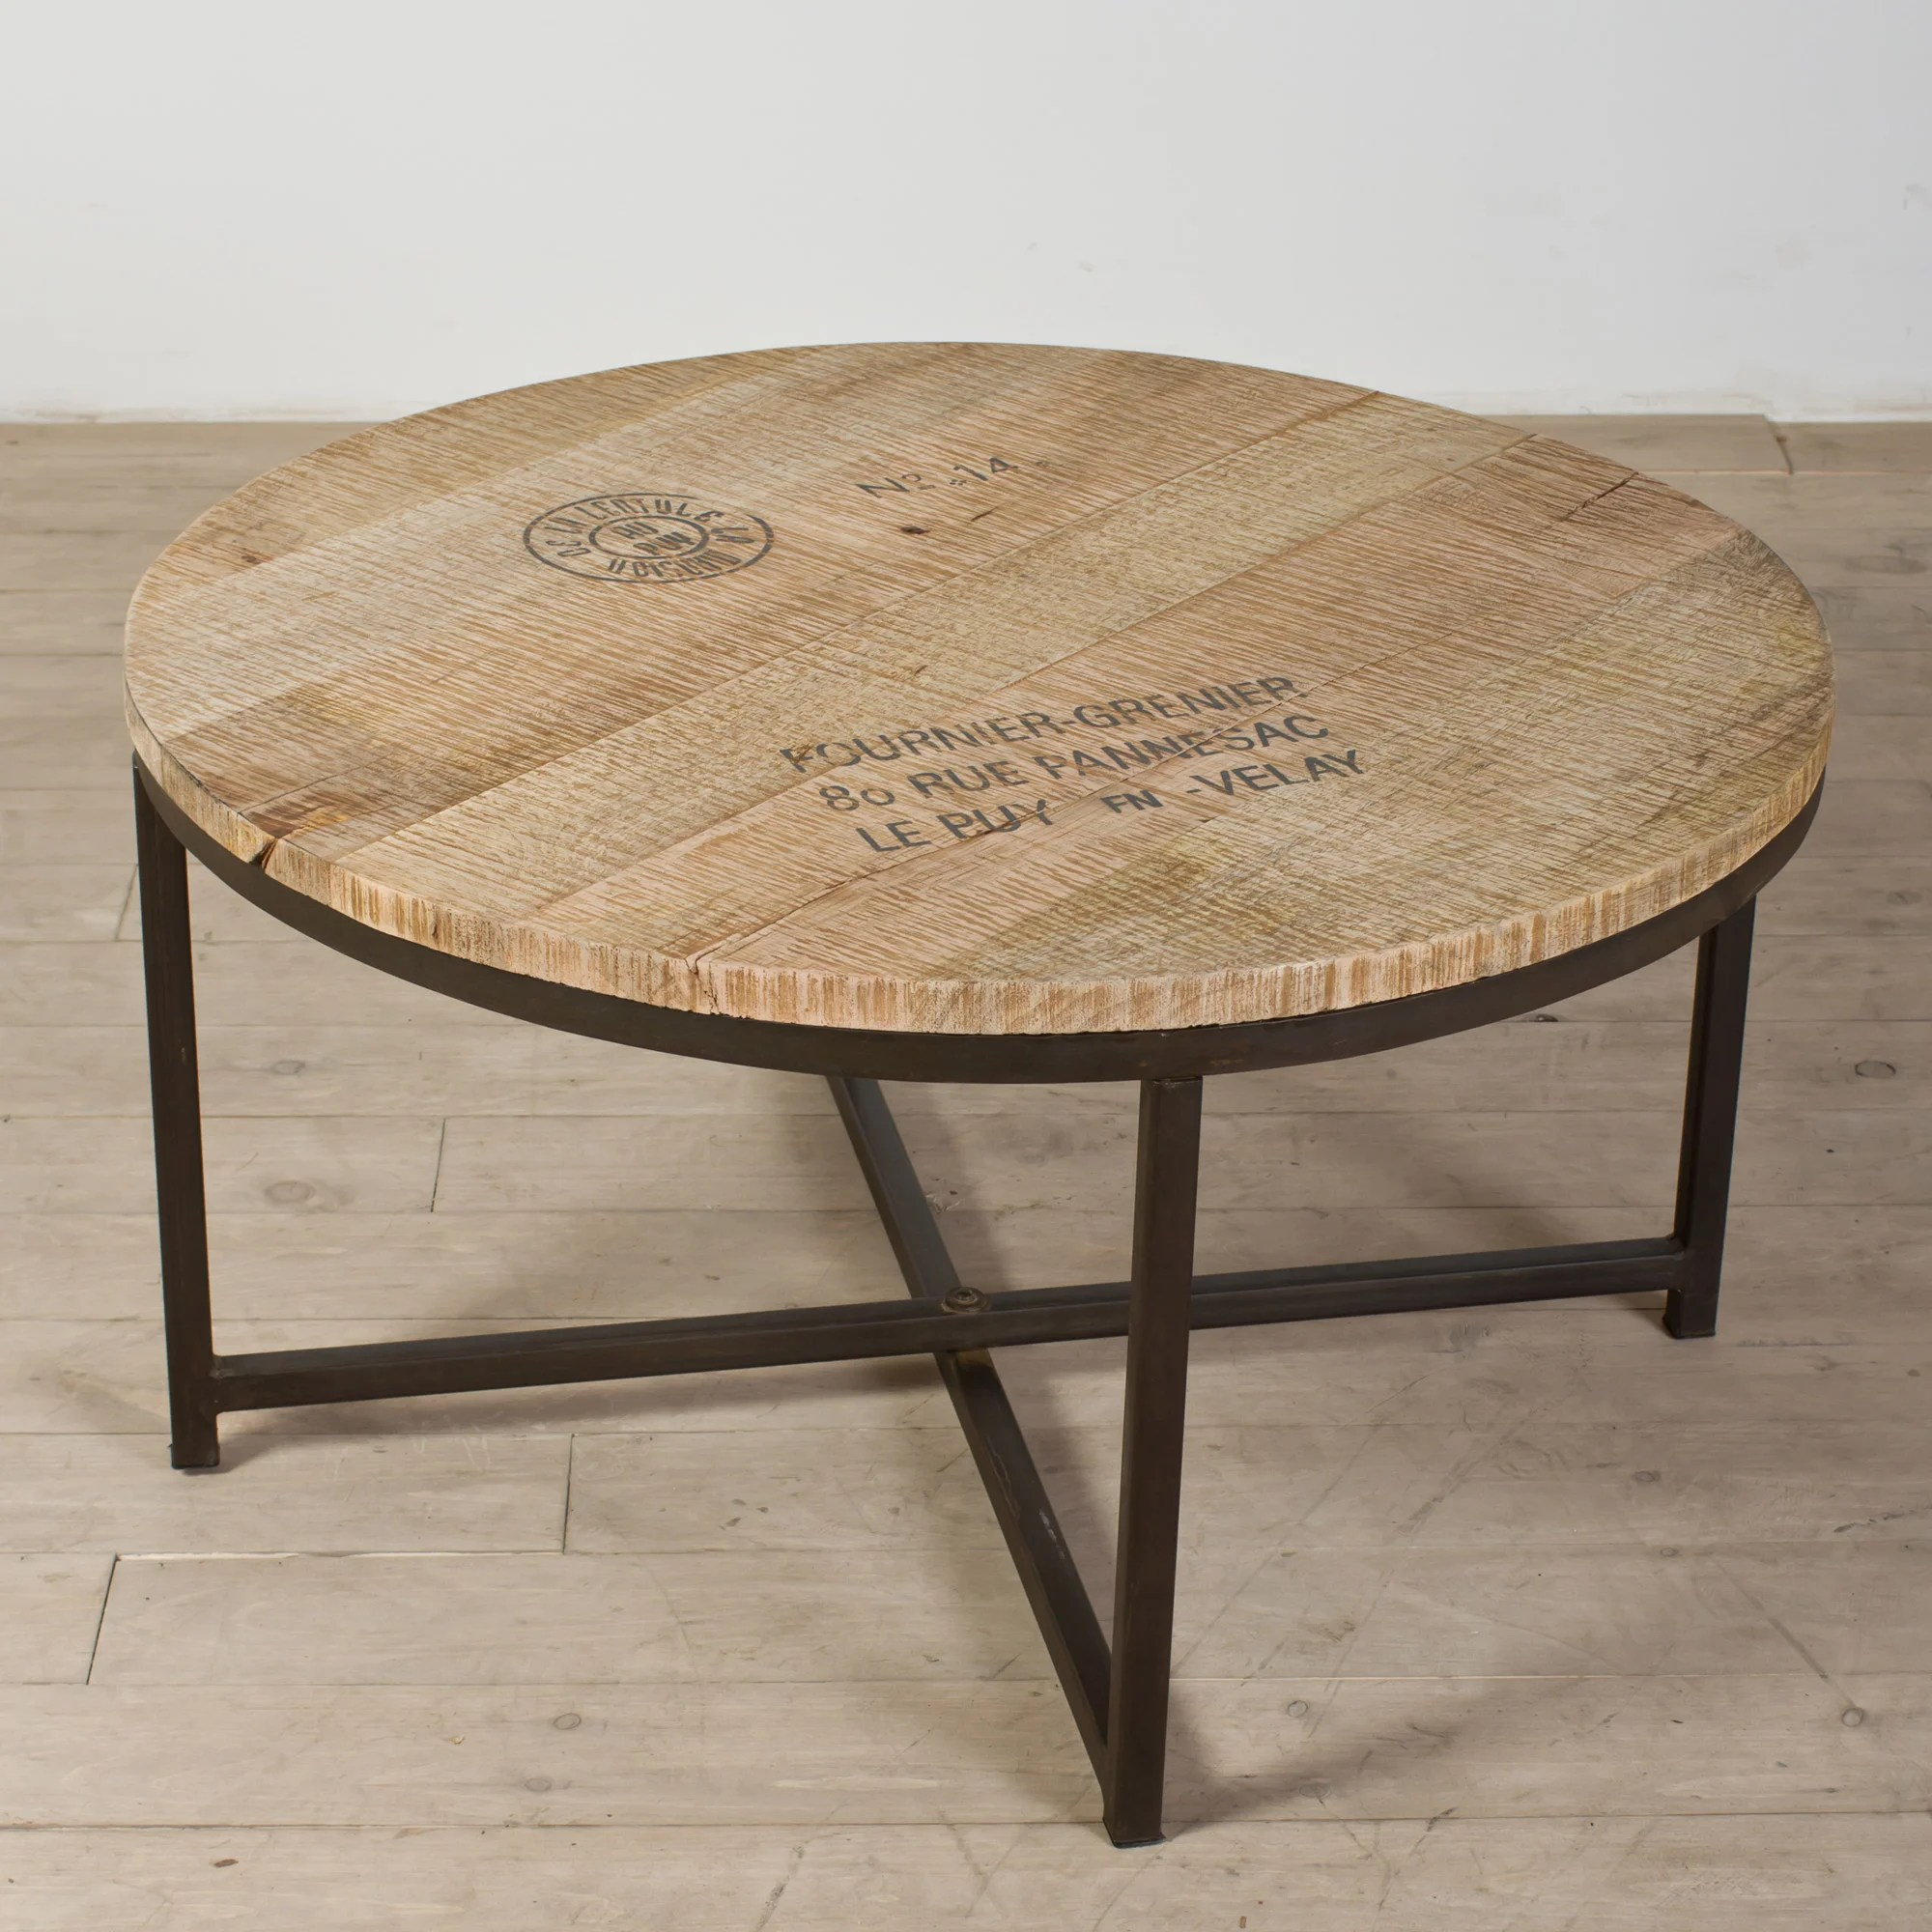 Round Coffee Table And End Tables Ayodhya Round Coffee Table India Overstock Shopping